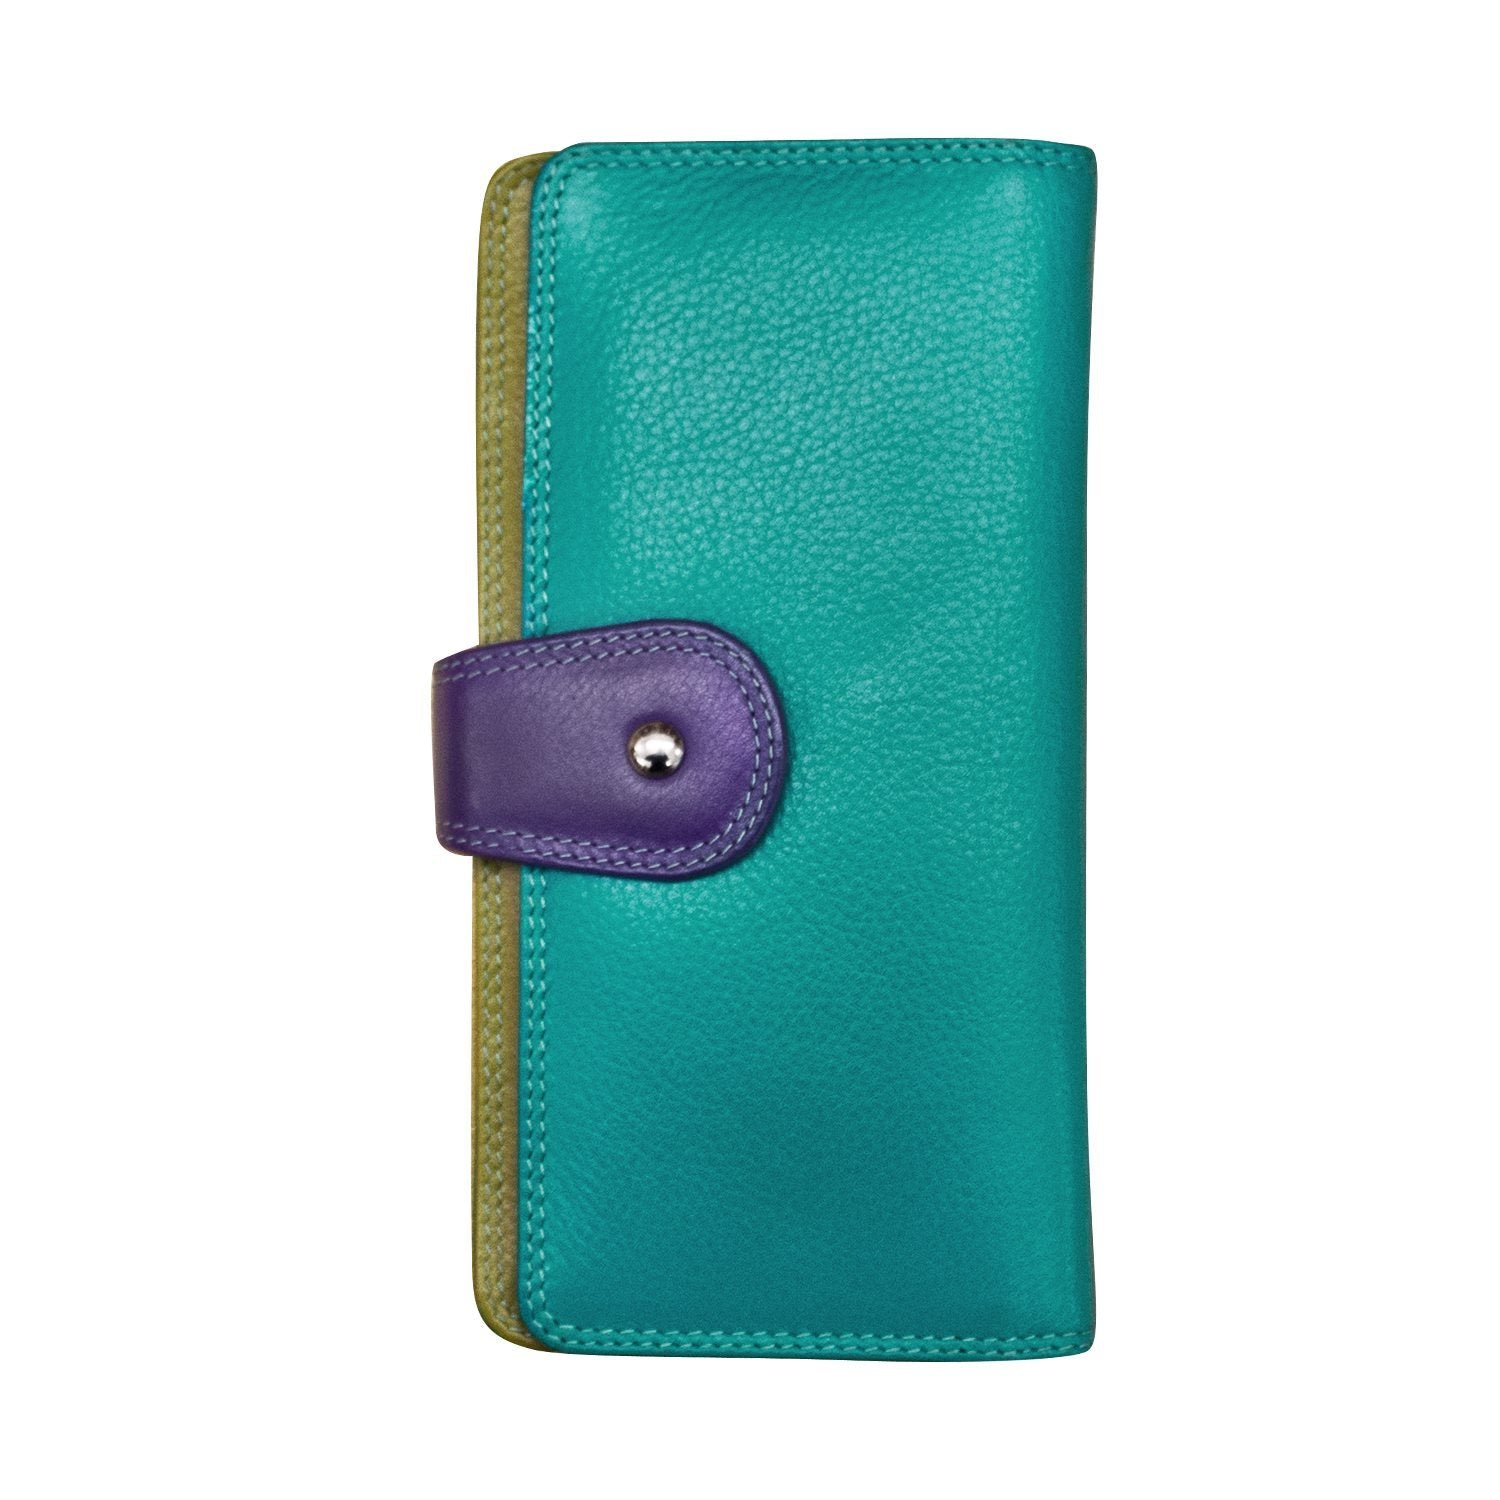 Slim Full Size Wallet | Cool Tropics - Susie O's Handbags